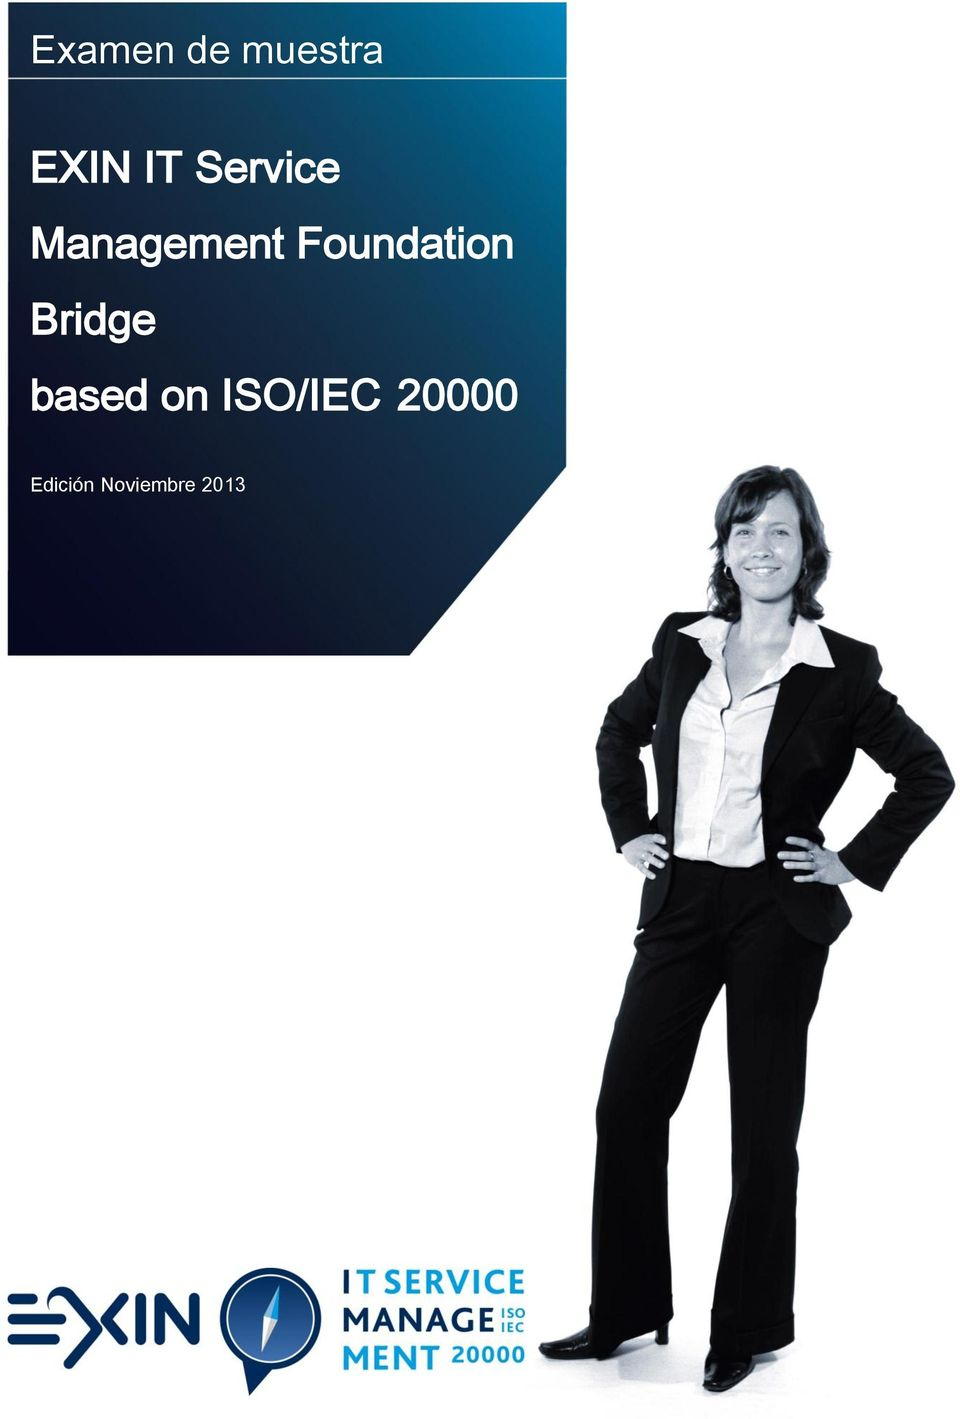 Foundation Bridge based on